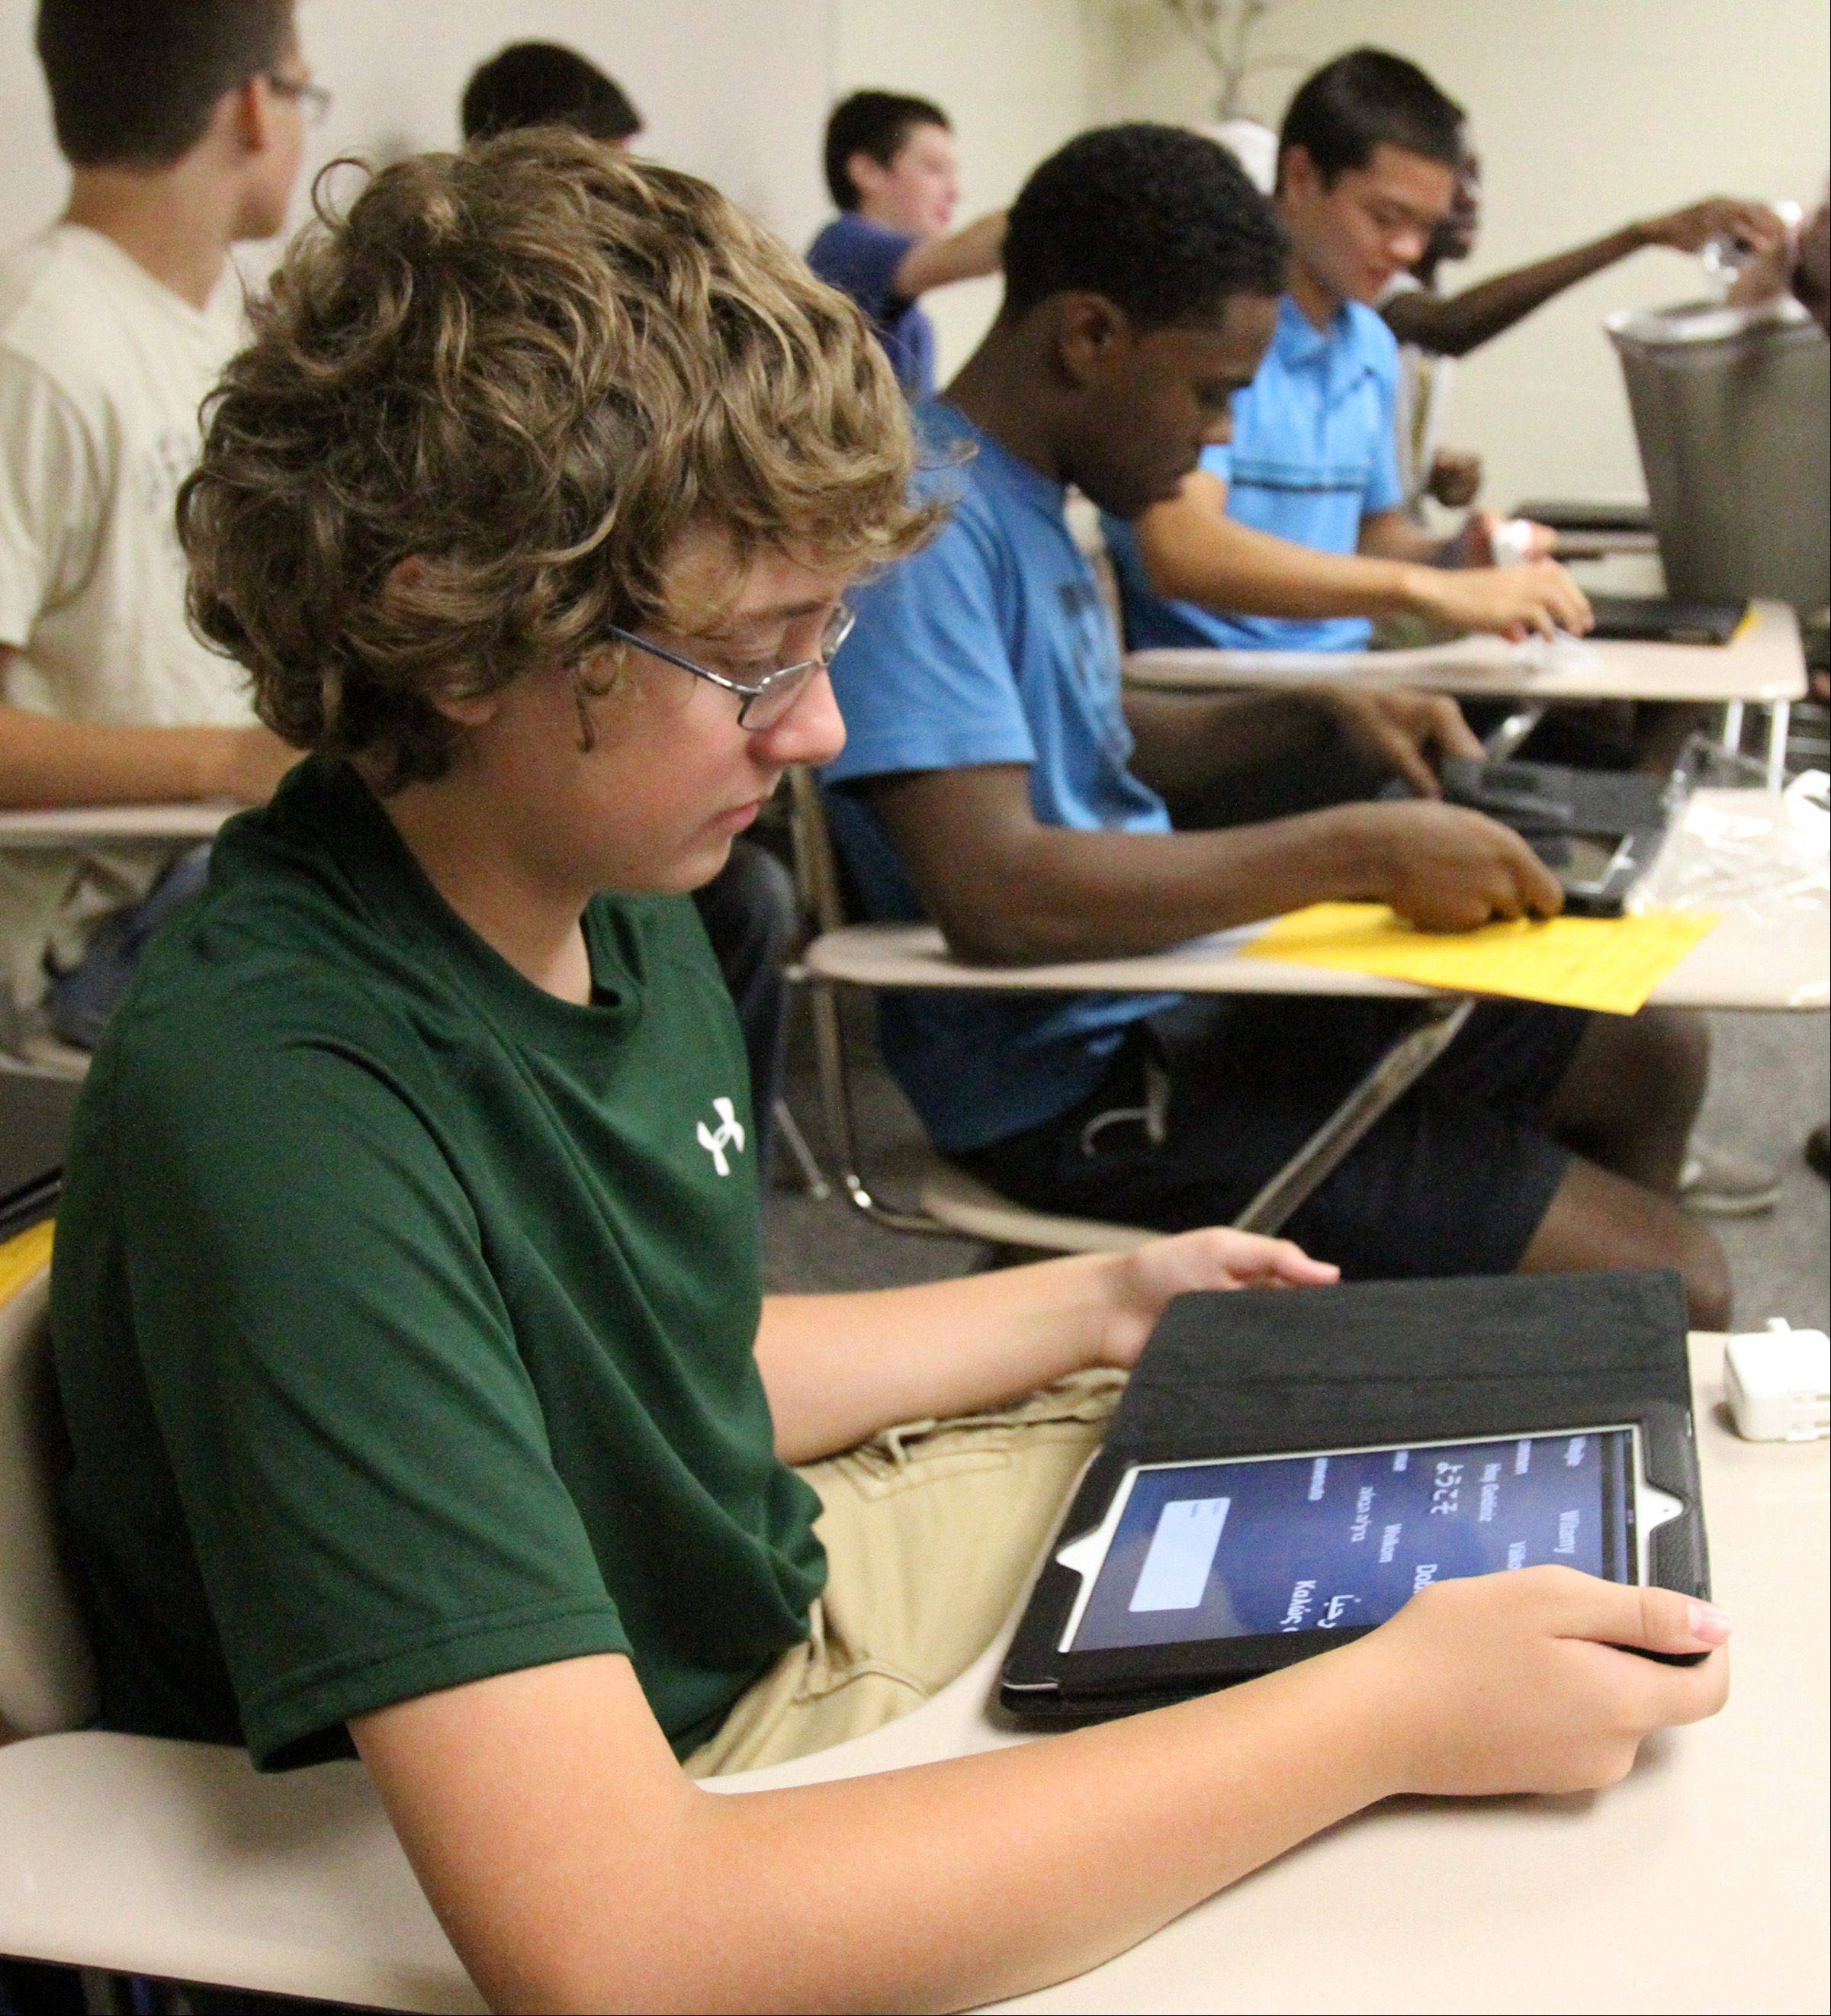 Fremd High School freshman Zach Kuehn checks his new iPad during social studies class as 300 students at the school were issued iPads on the first day of school Thursday. The iPads are part of District 211's electronic device program.